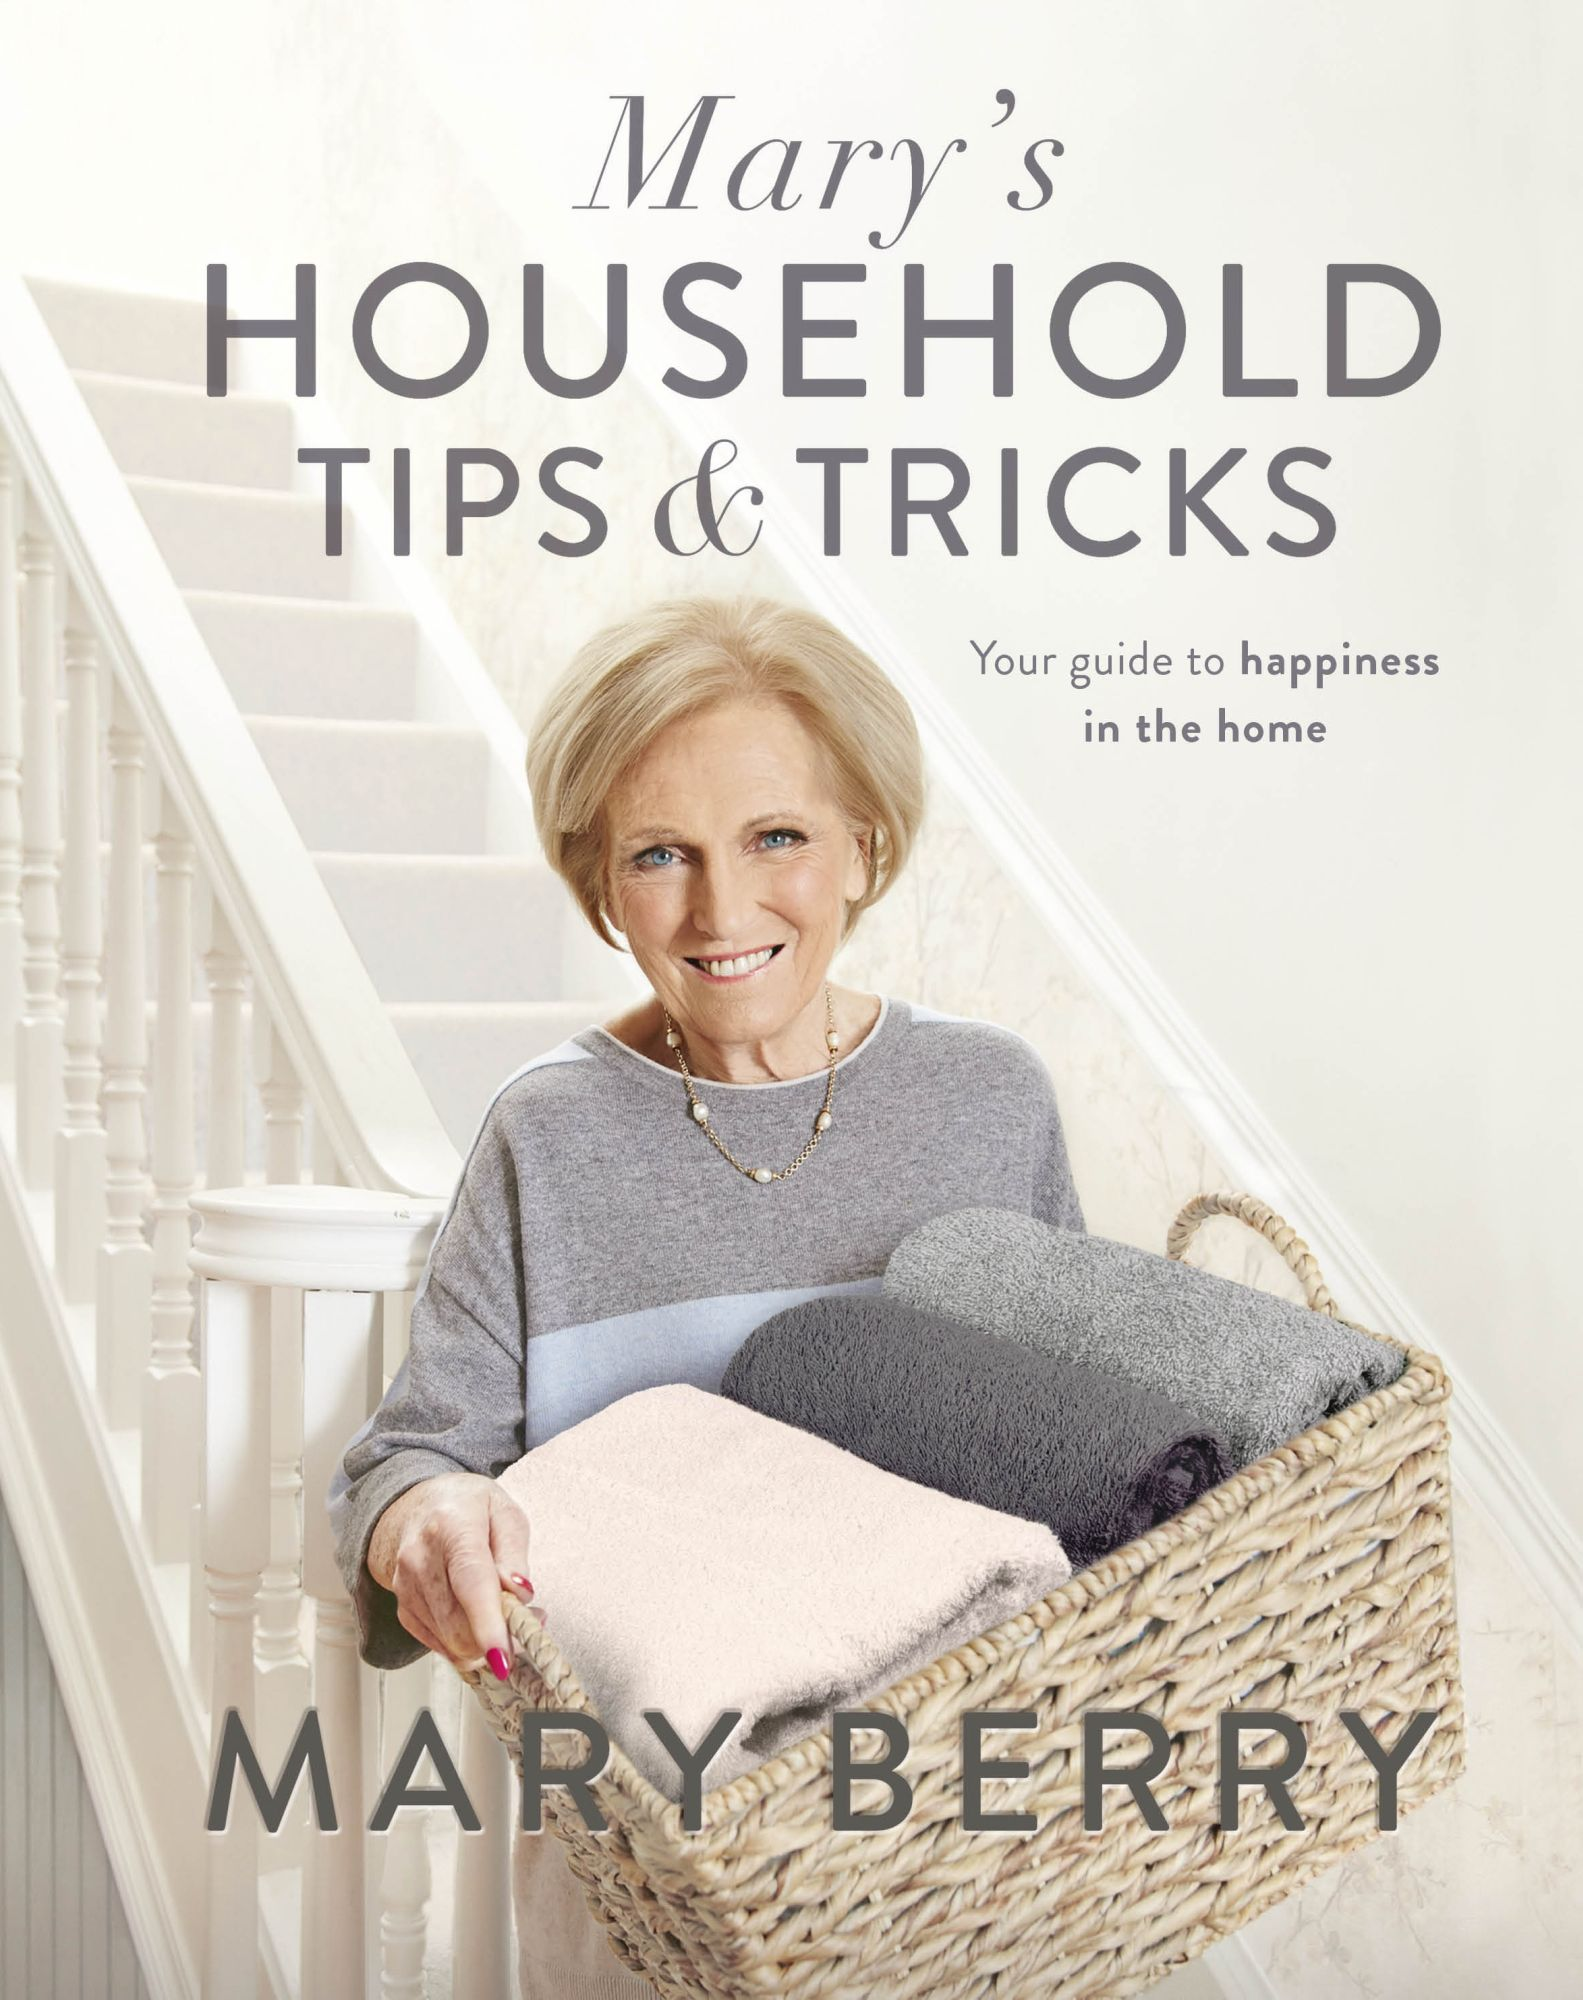 Household cleaning items in Mary's Household Tips & Tricks published by Michael Joseph (Loupe/Michael Joseph/PA)